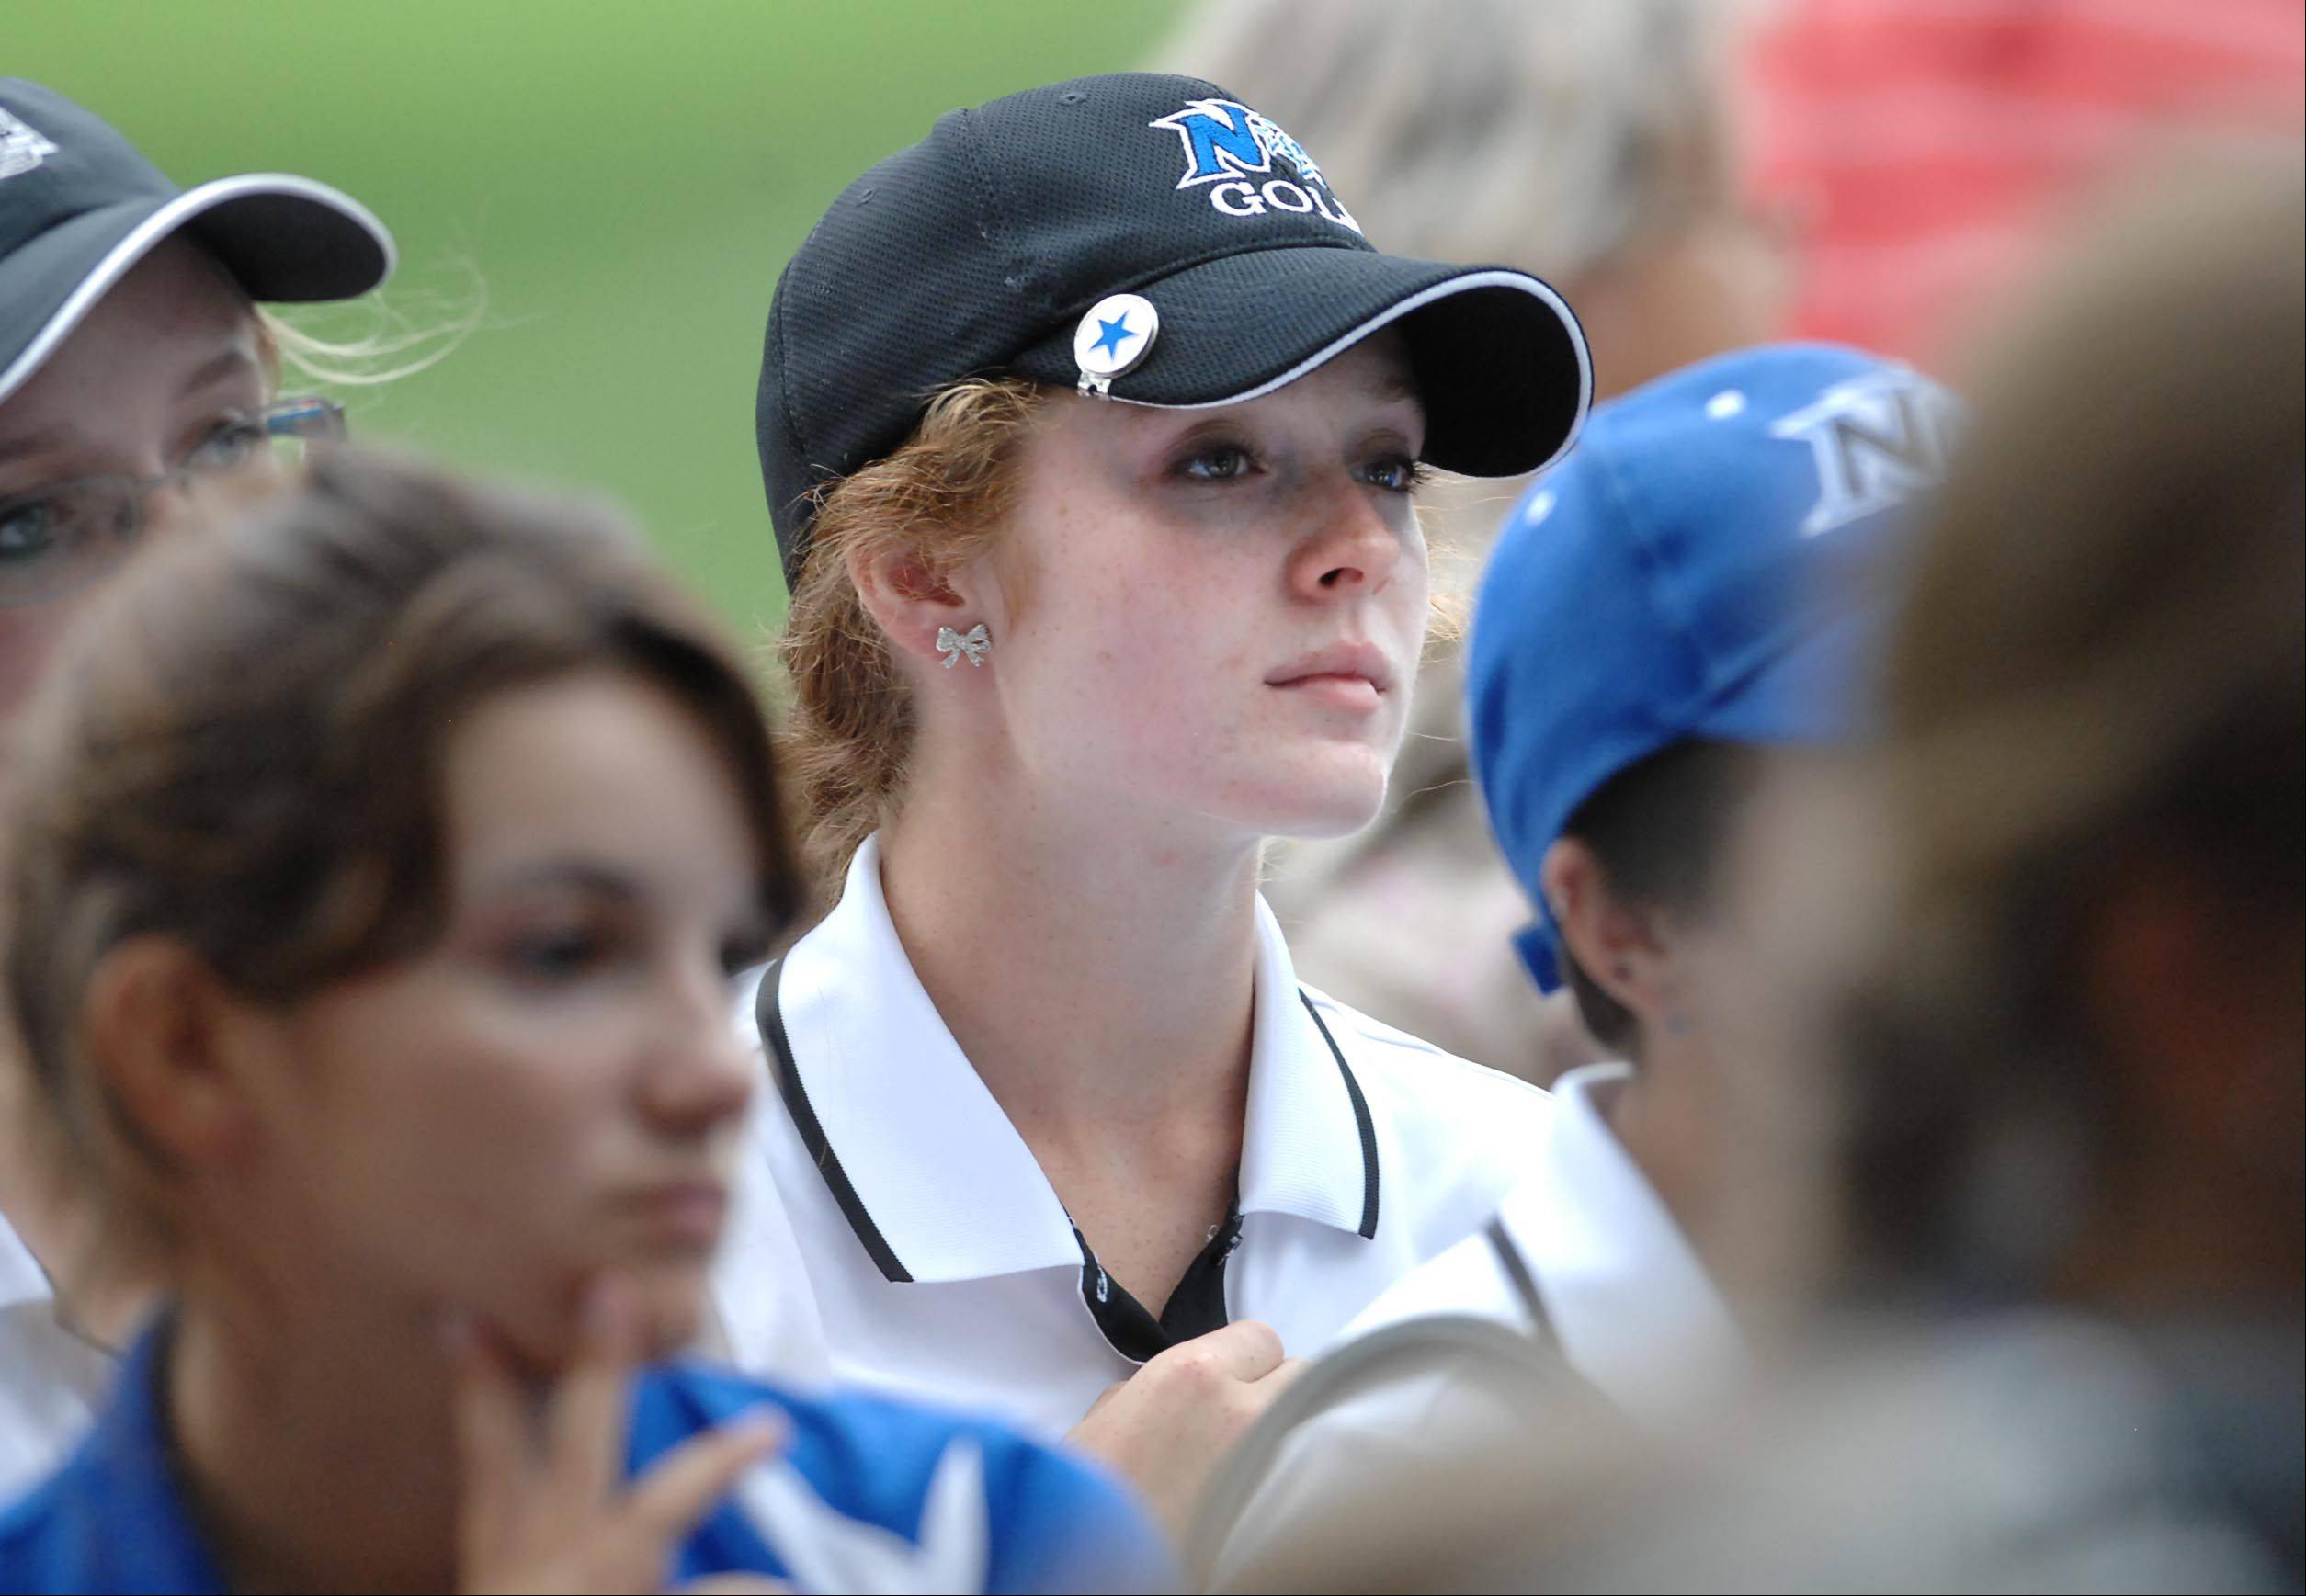 Jessica Grill placed second with a score of 39 Monday at the Elgin Country Club girls golf invitational.